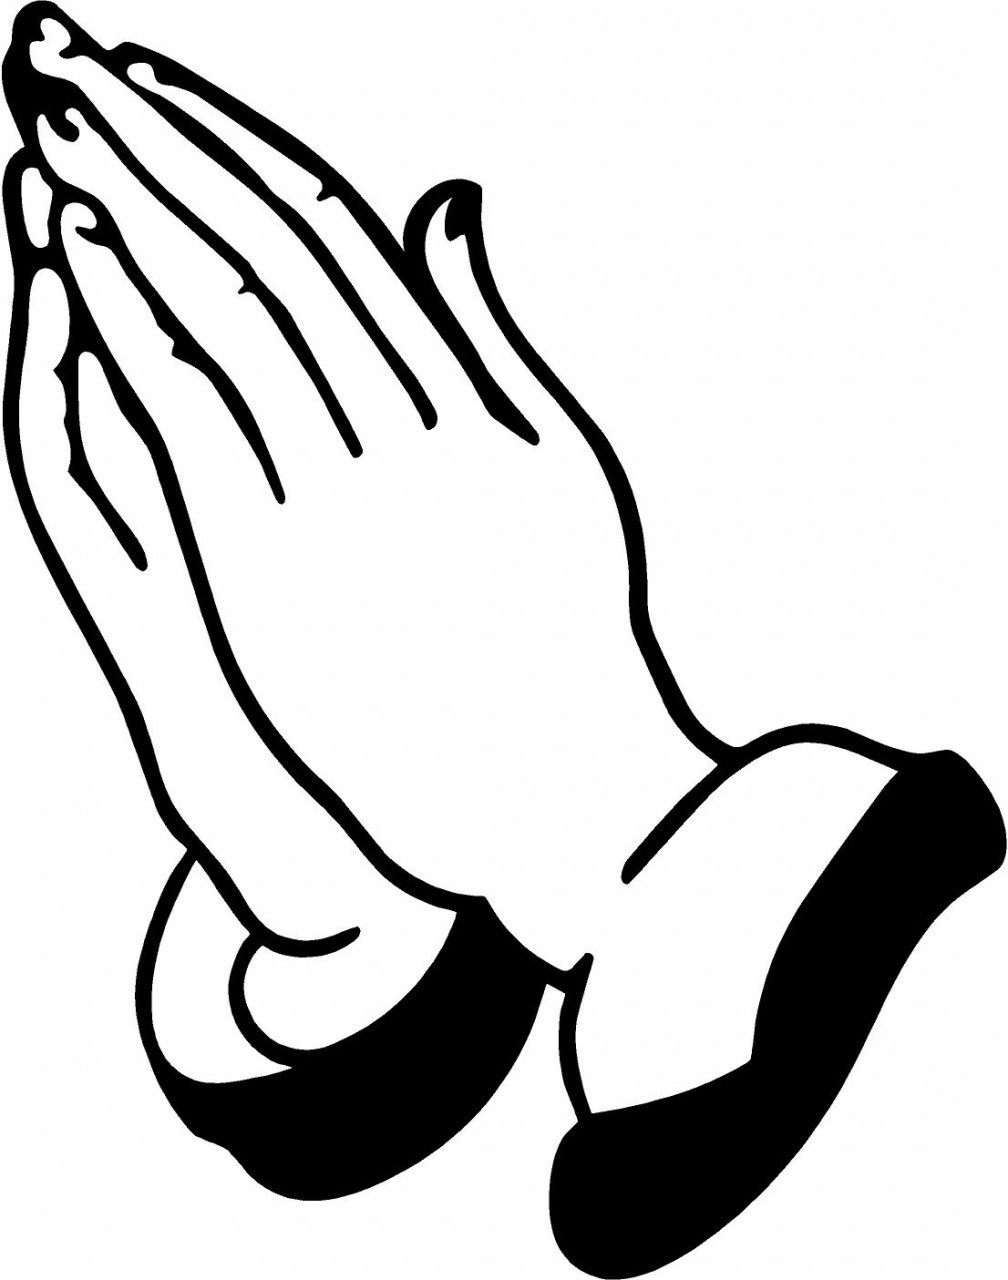 Praying Hands Clipart u0026 Praying Hands Clip Art Images - ClipartALL clipartall.com